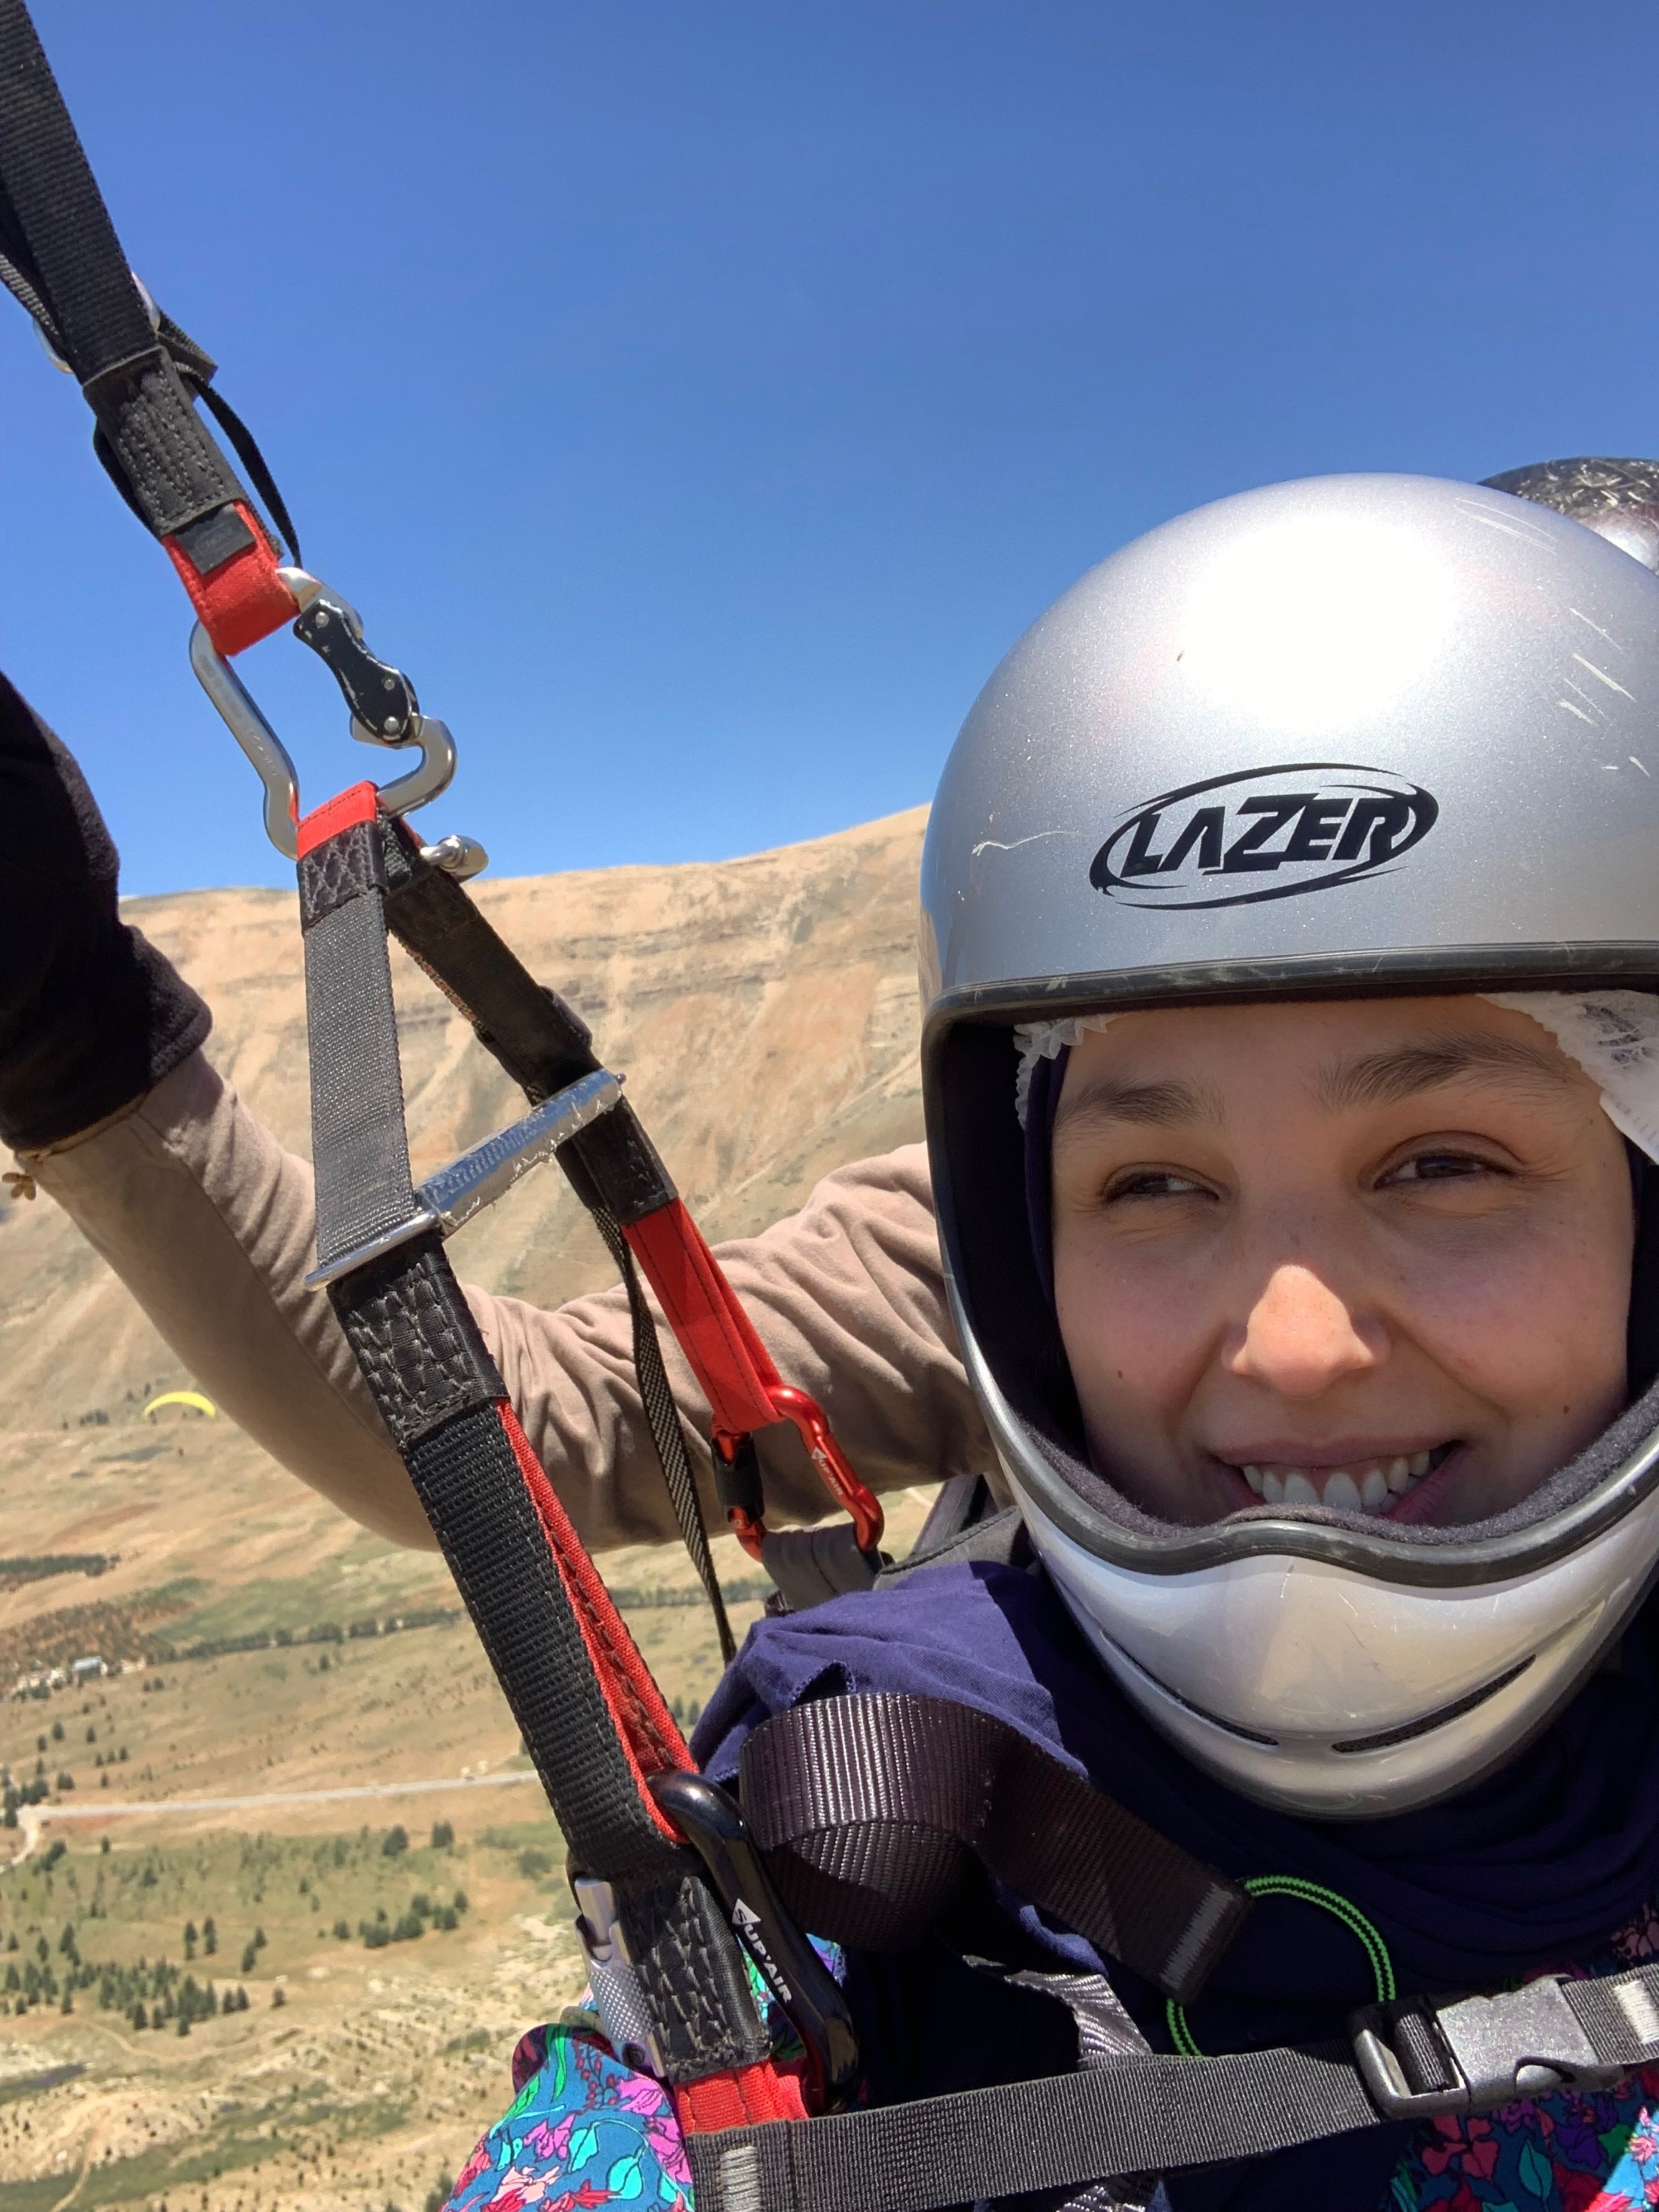 A close up image shows a woman smiling at the camera, wearing a silver helmet and with straps and clips covering her chest. Behind her we see the hand of a guide controlling levers. The background is a beautiful valley.